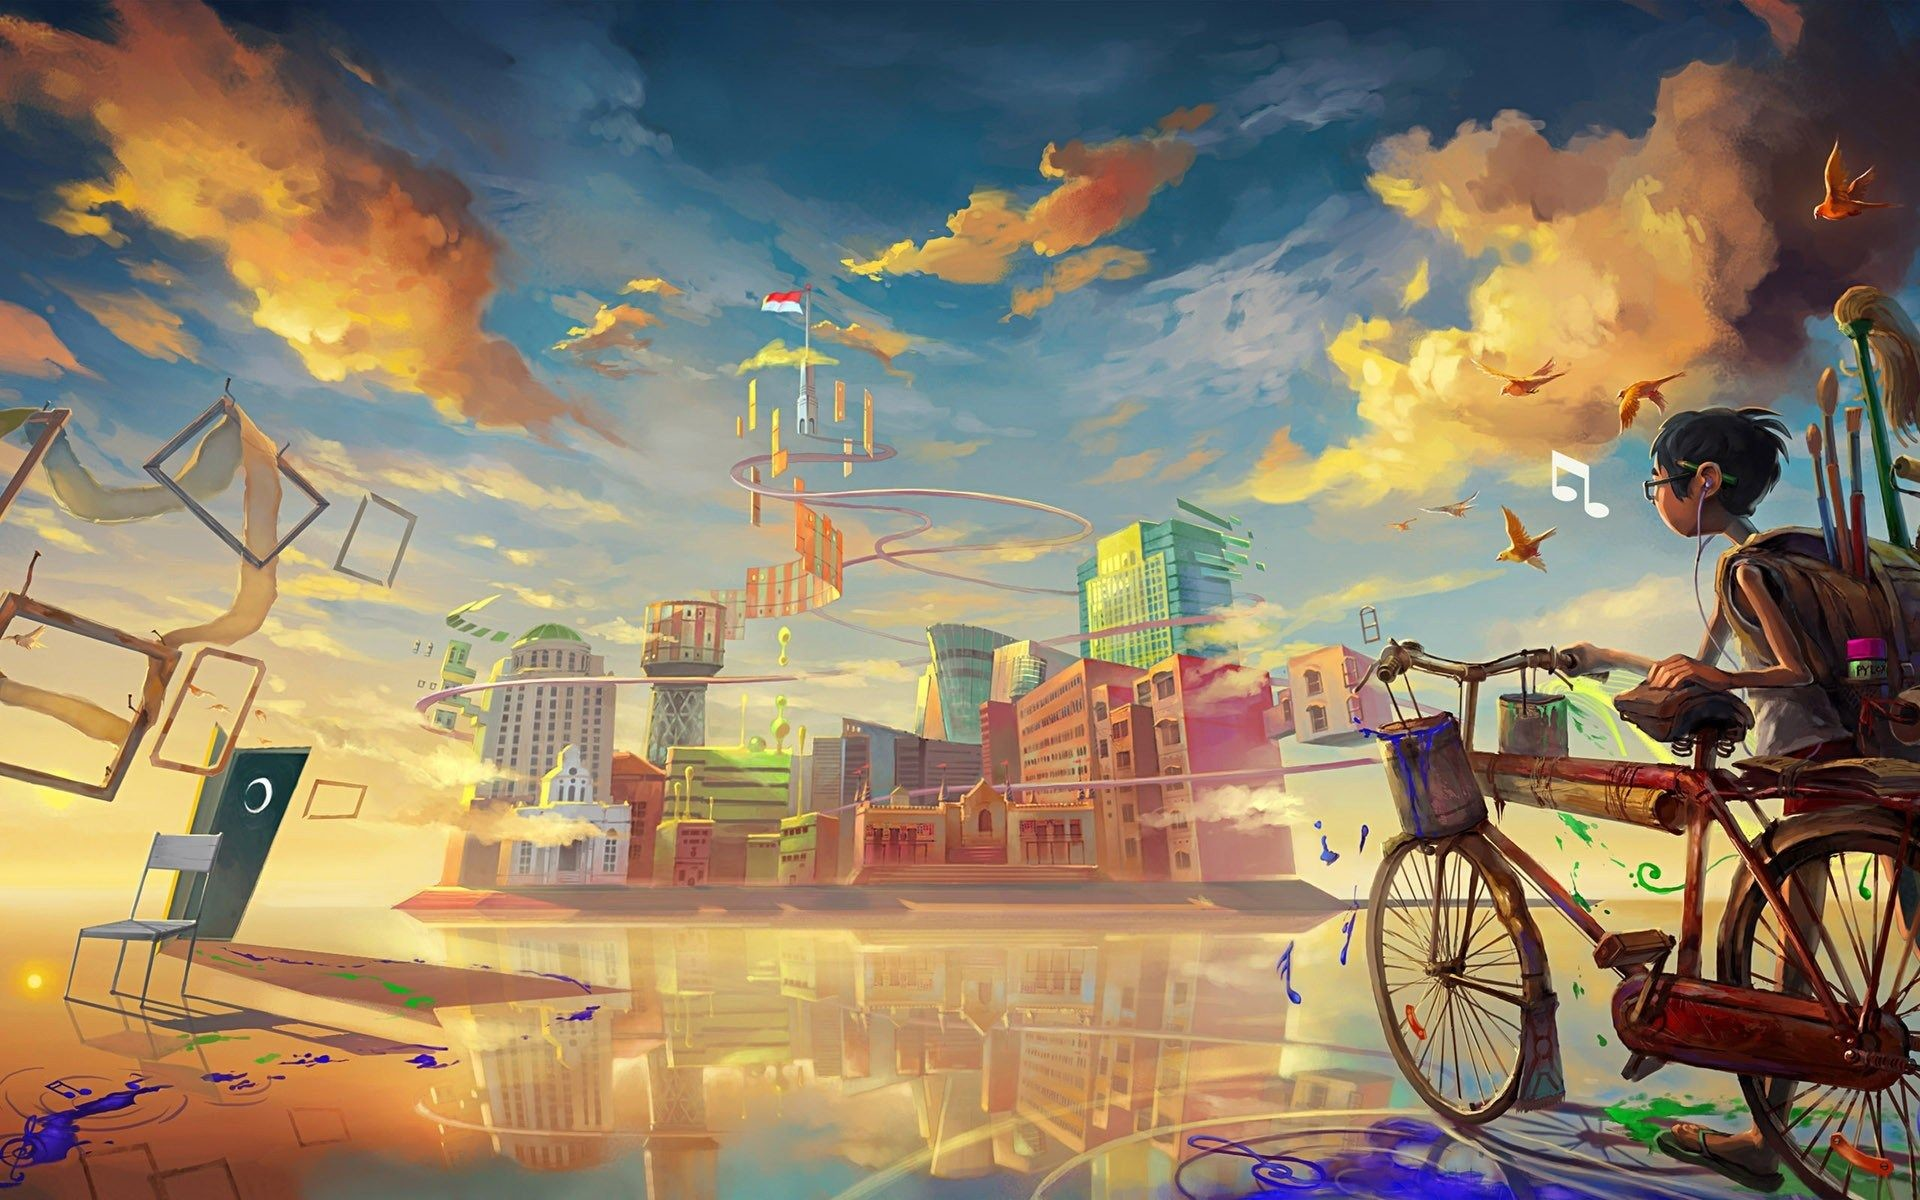 1920x1200 boy-biccycle-city-drawing-paint-art-HD-wallpaper